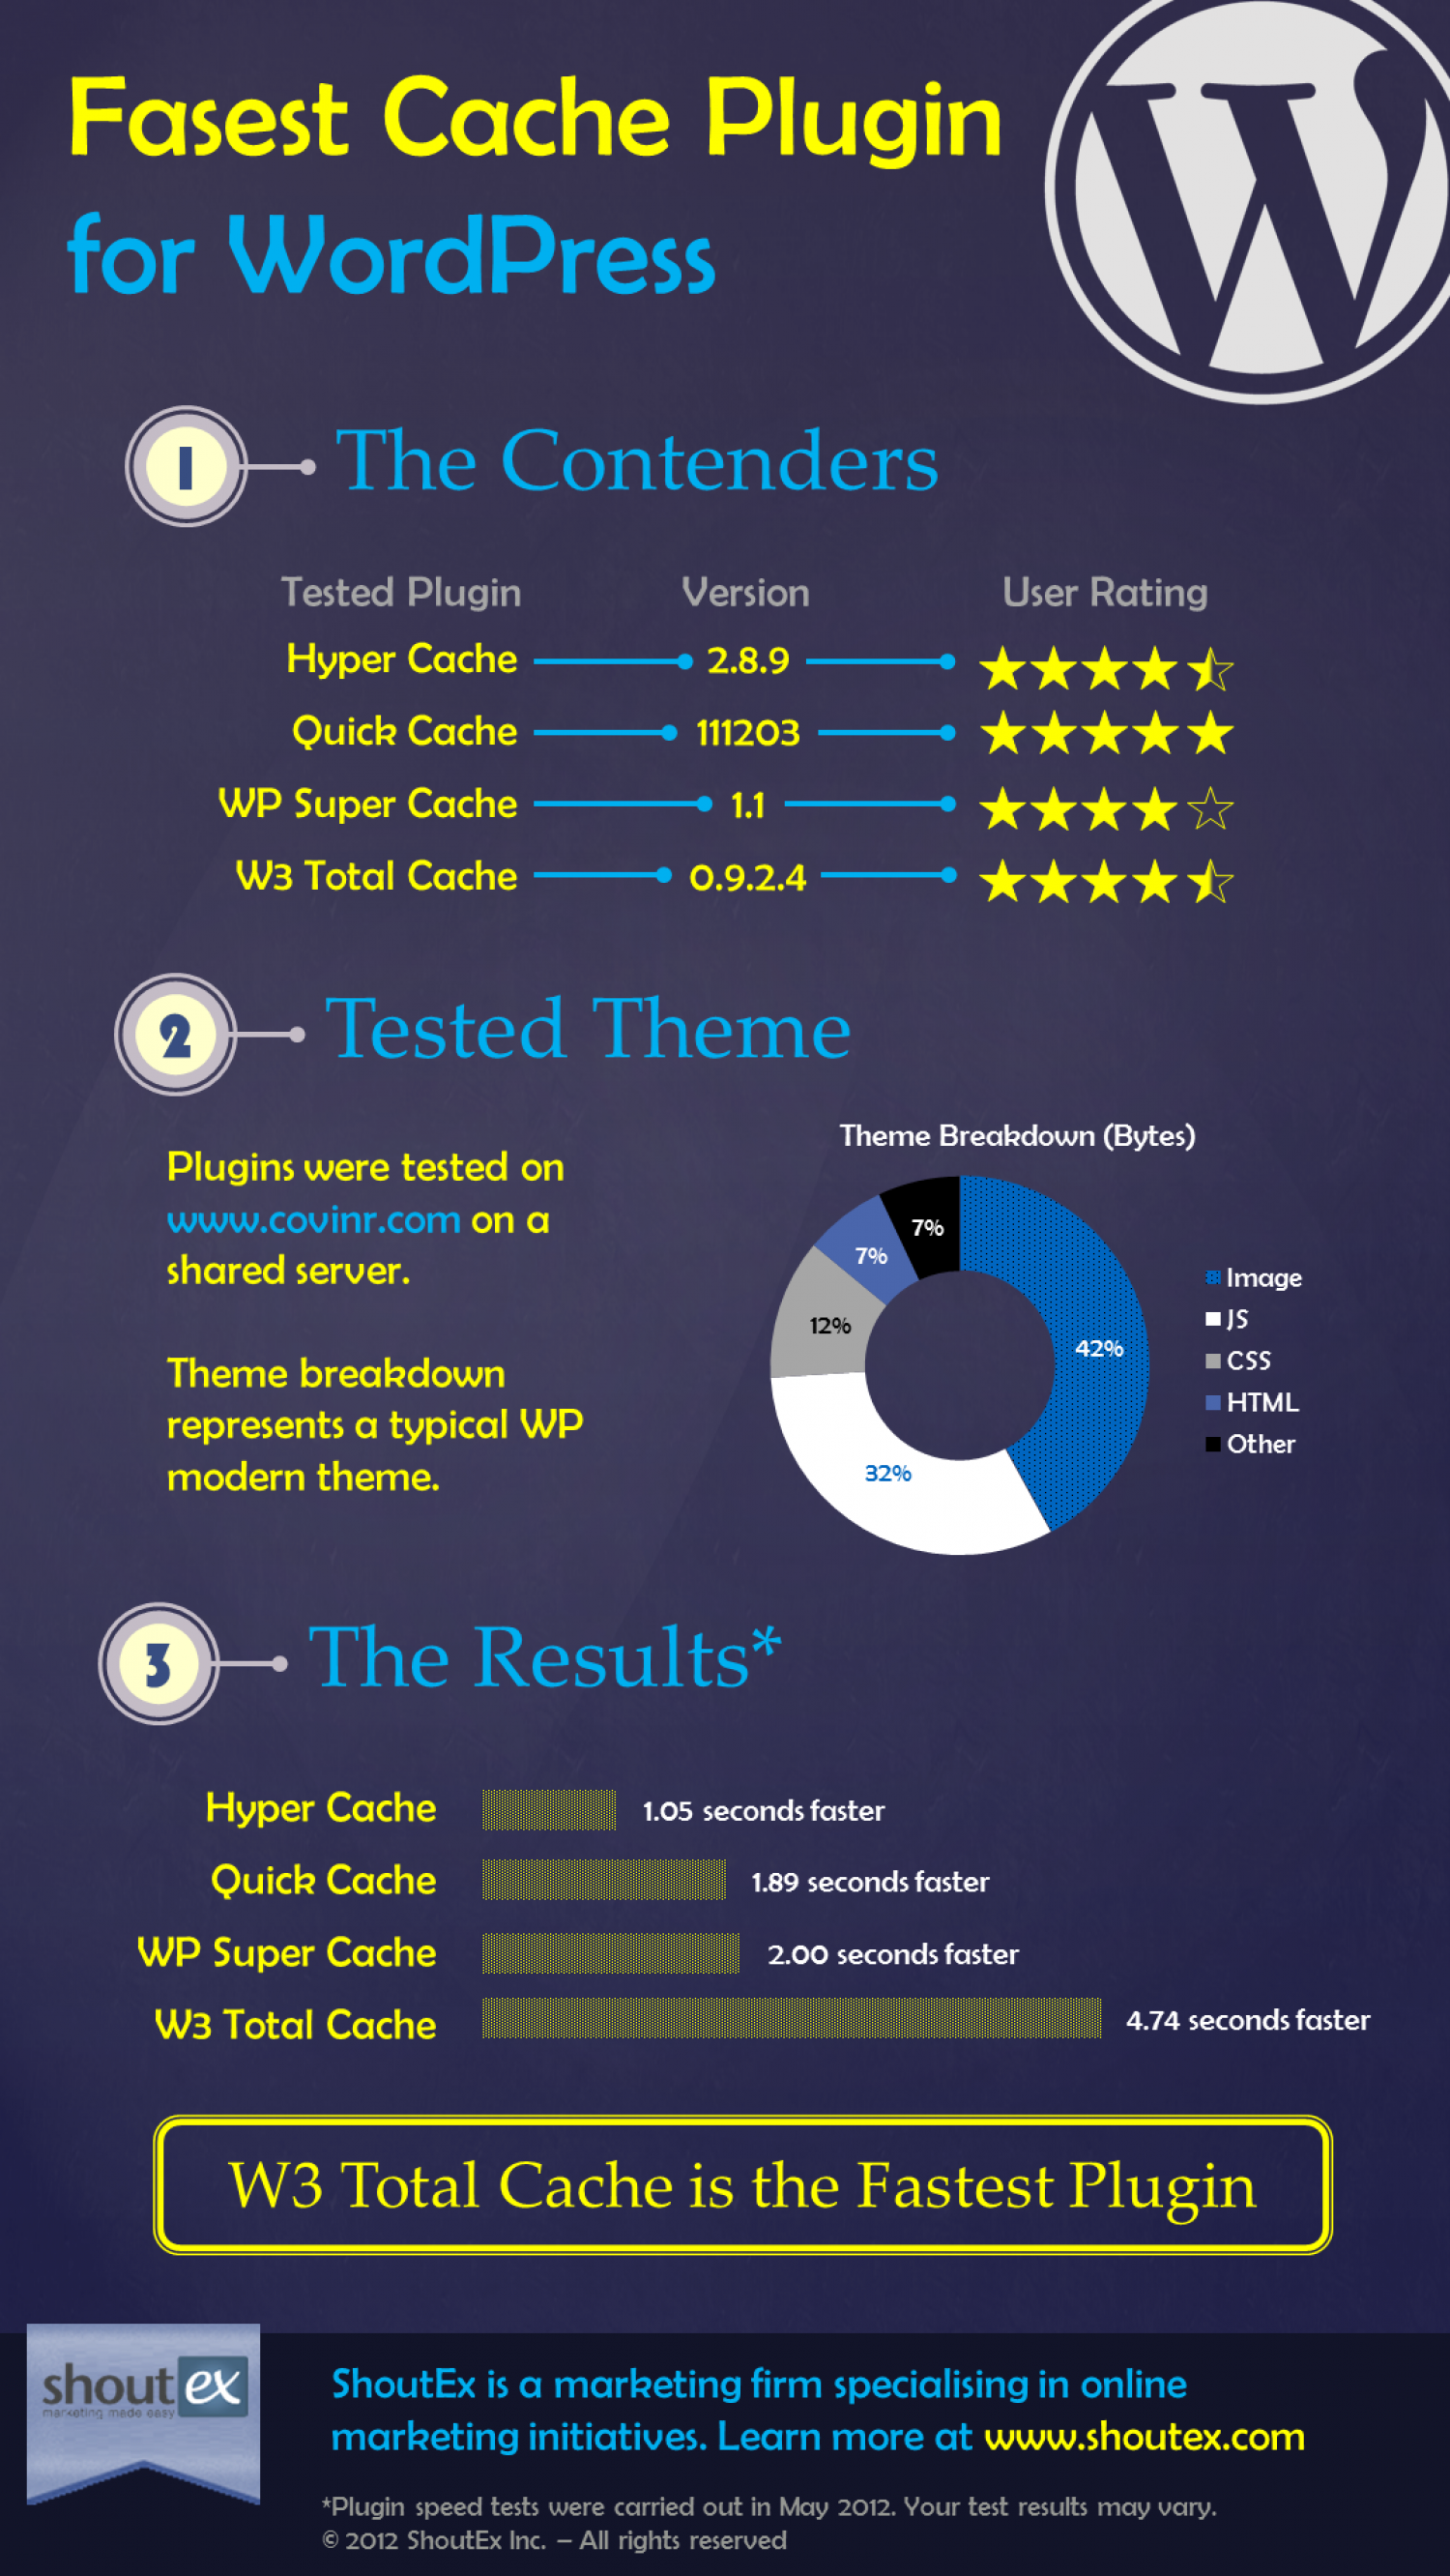 Speed Test for Wordpress Cache Plugins Infographic